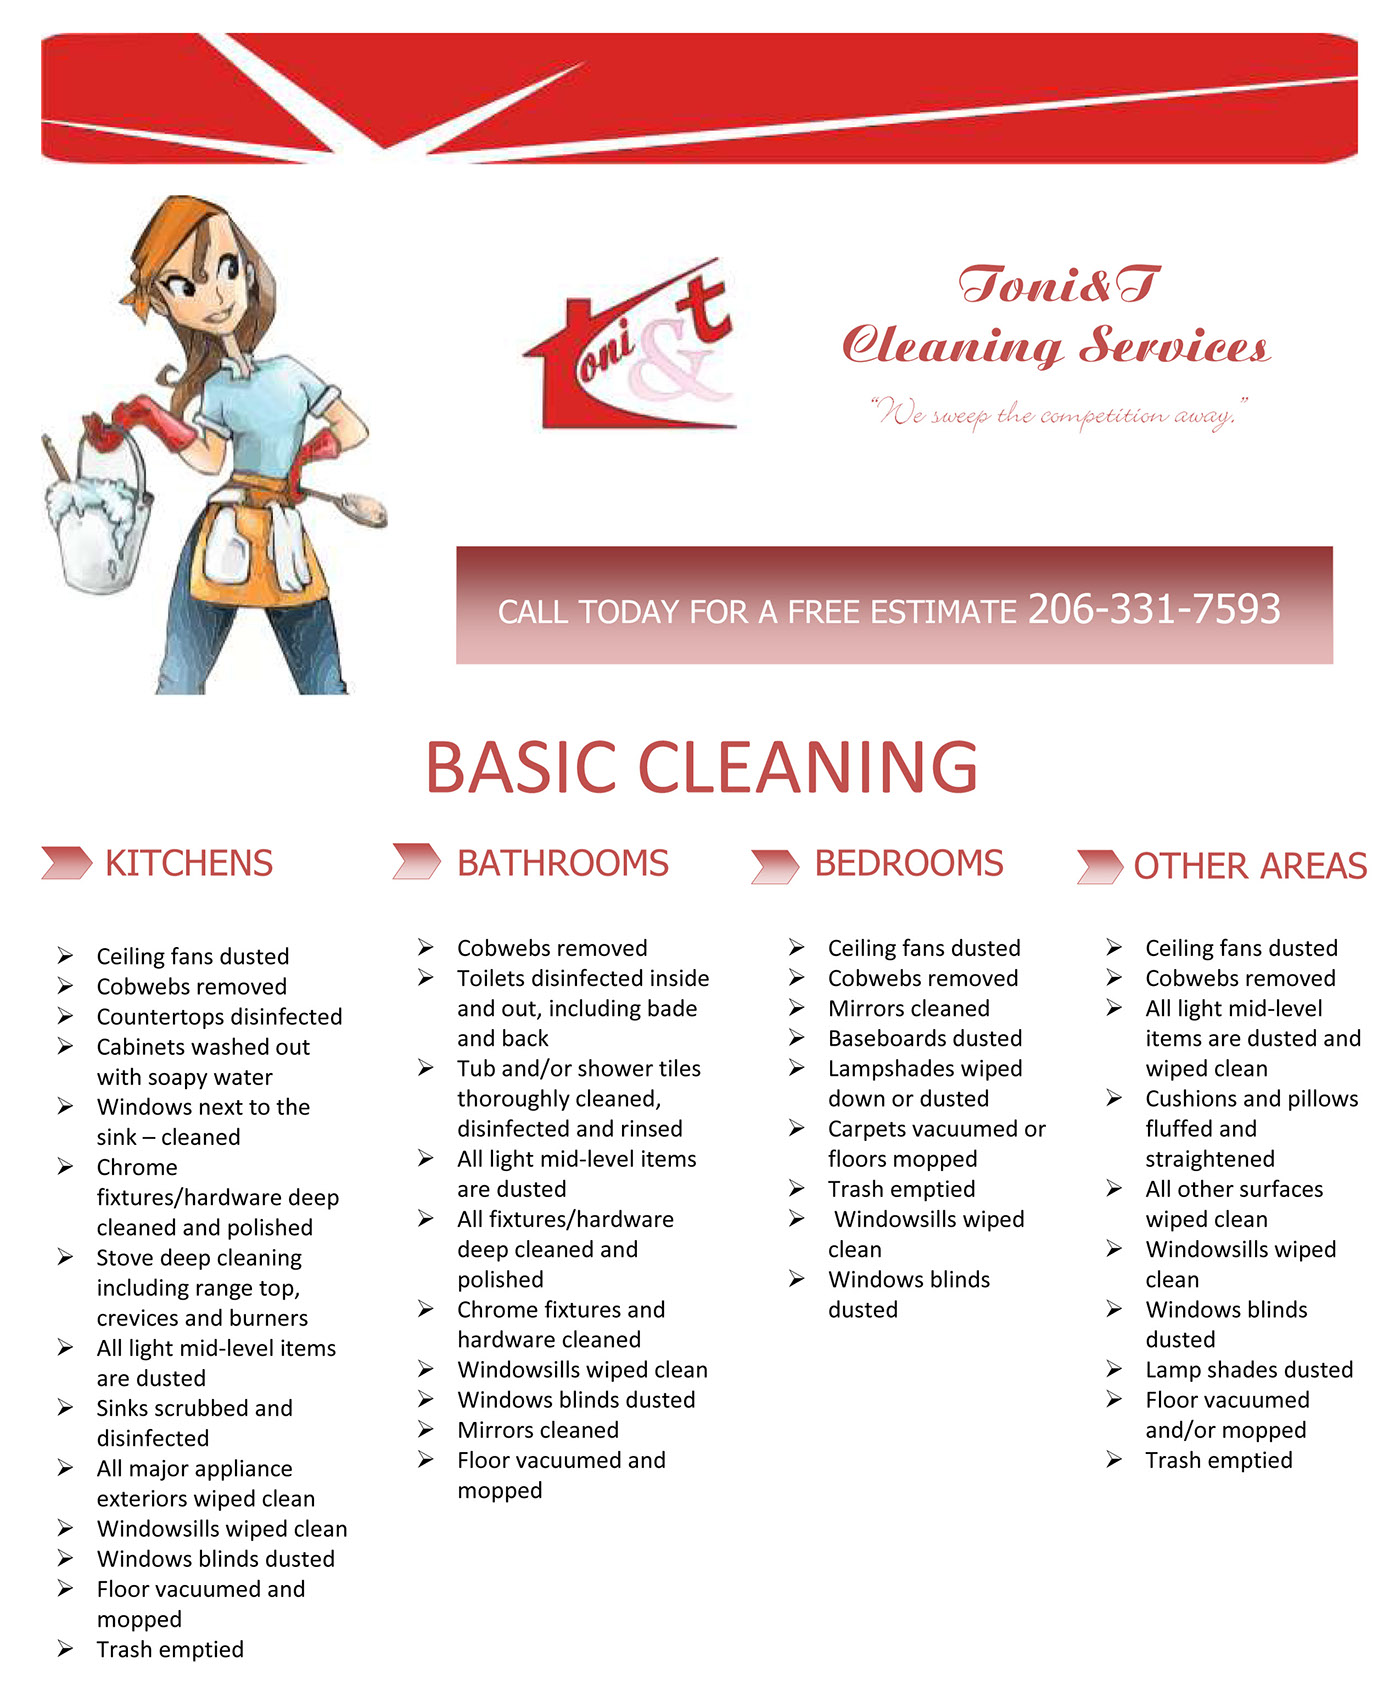 flyer for a cleaning services company on behance